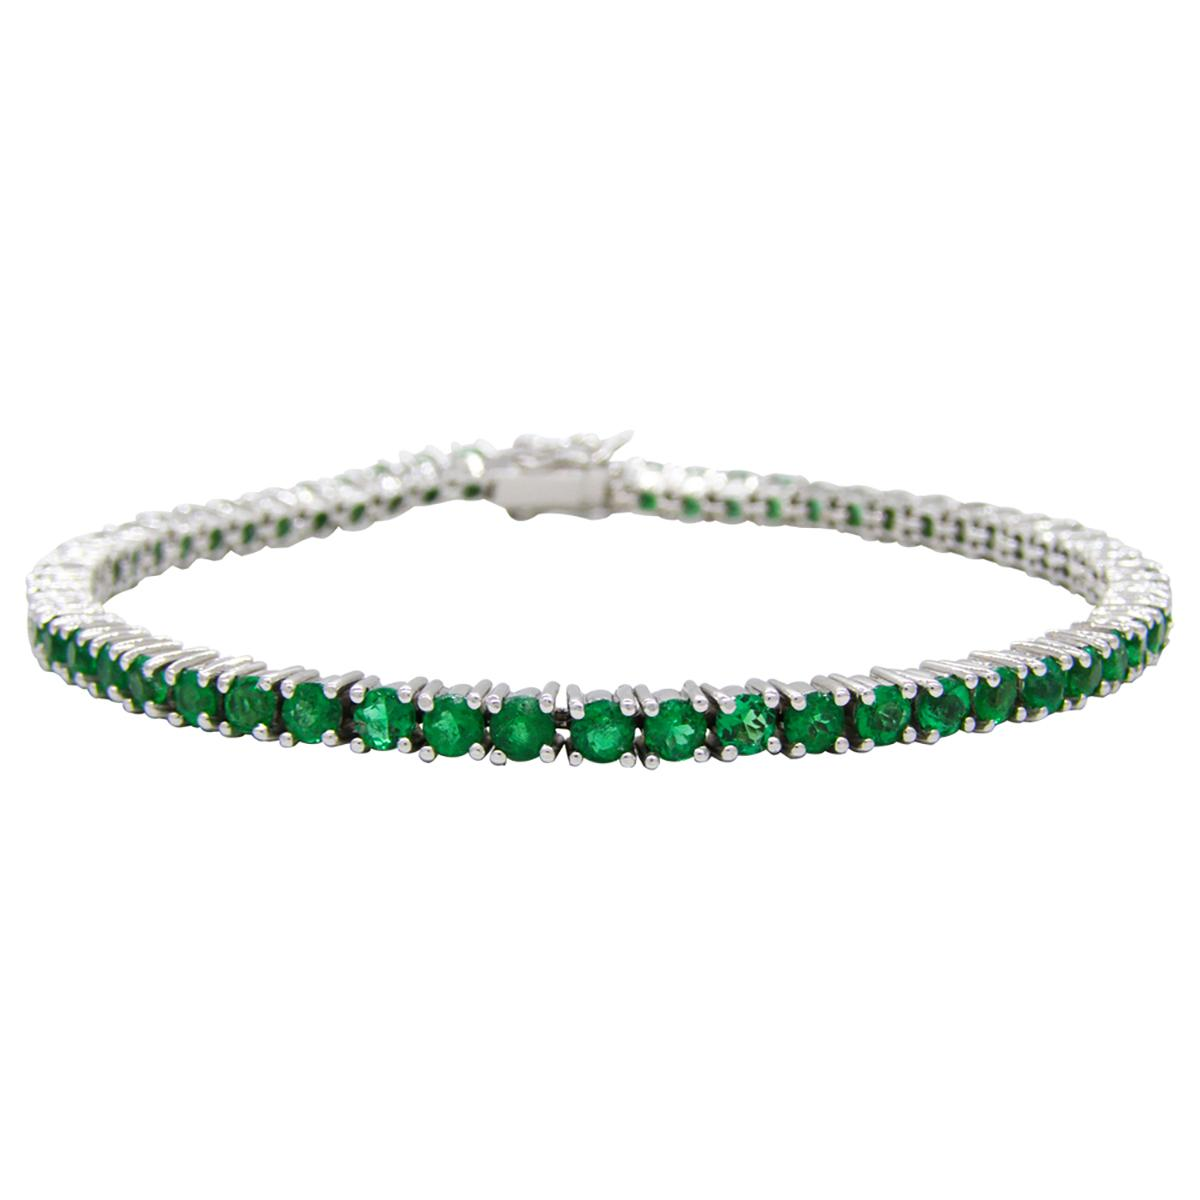 emerald-tennis-bracelet-in-18k-white-gold-with-round-natural-emeralds